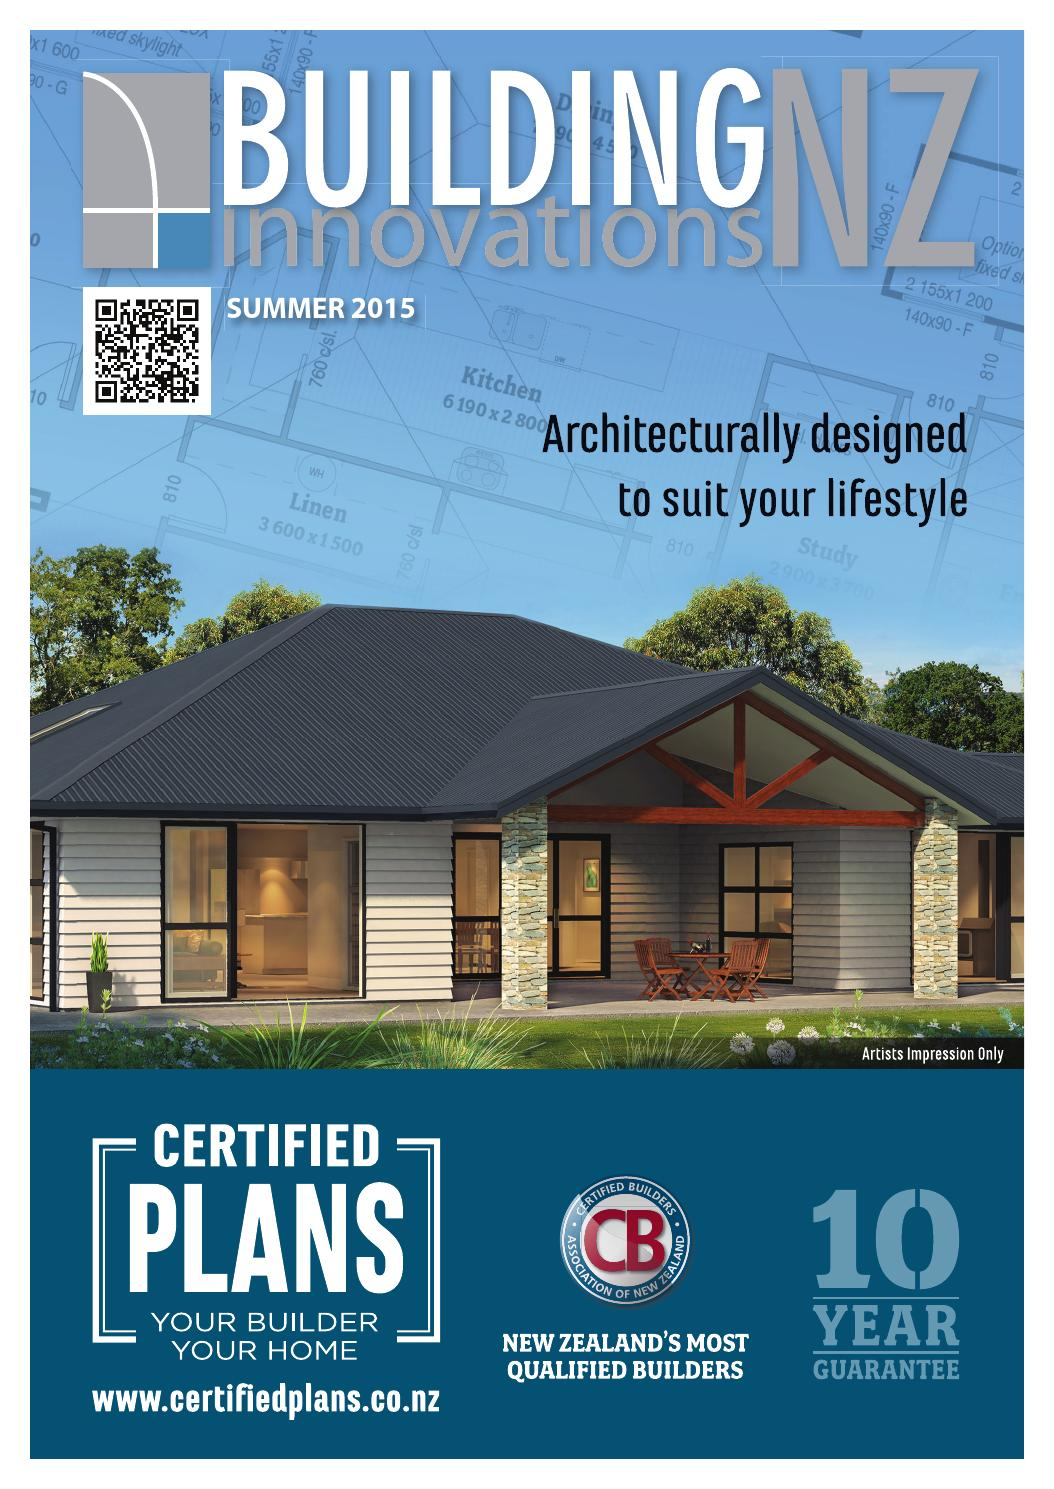 Building Innovations Summer 2015 by Waterford Press Limited - issuu